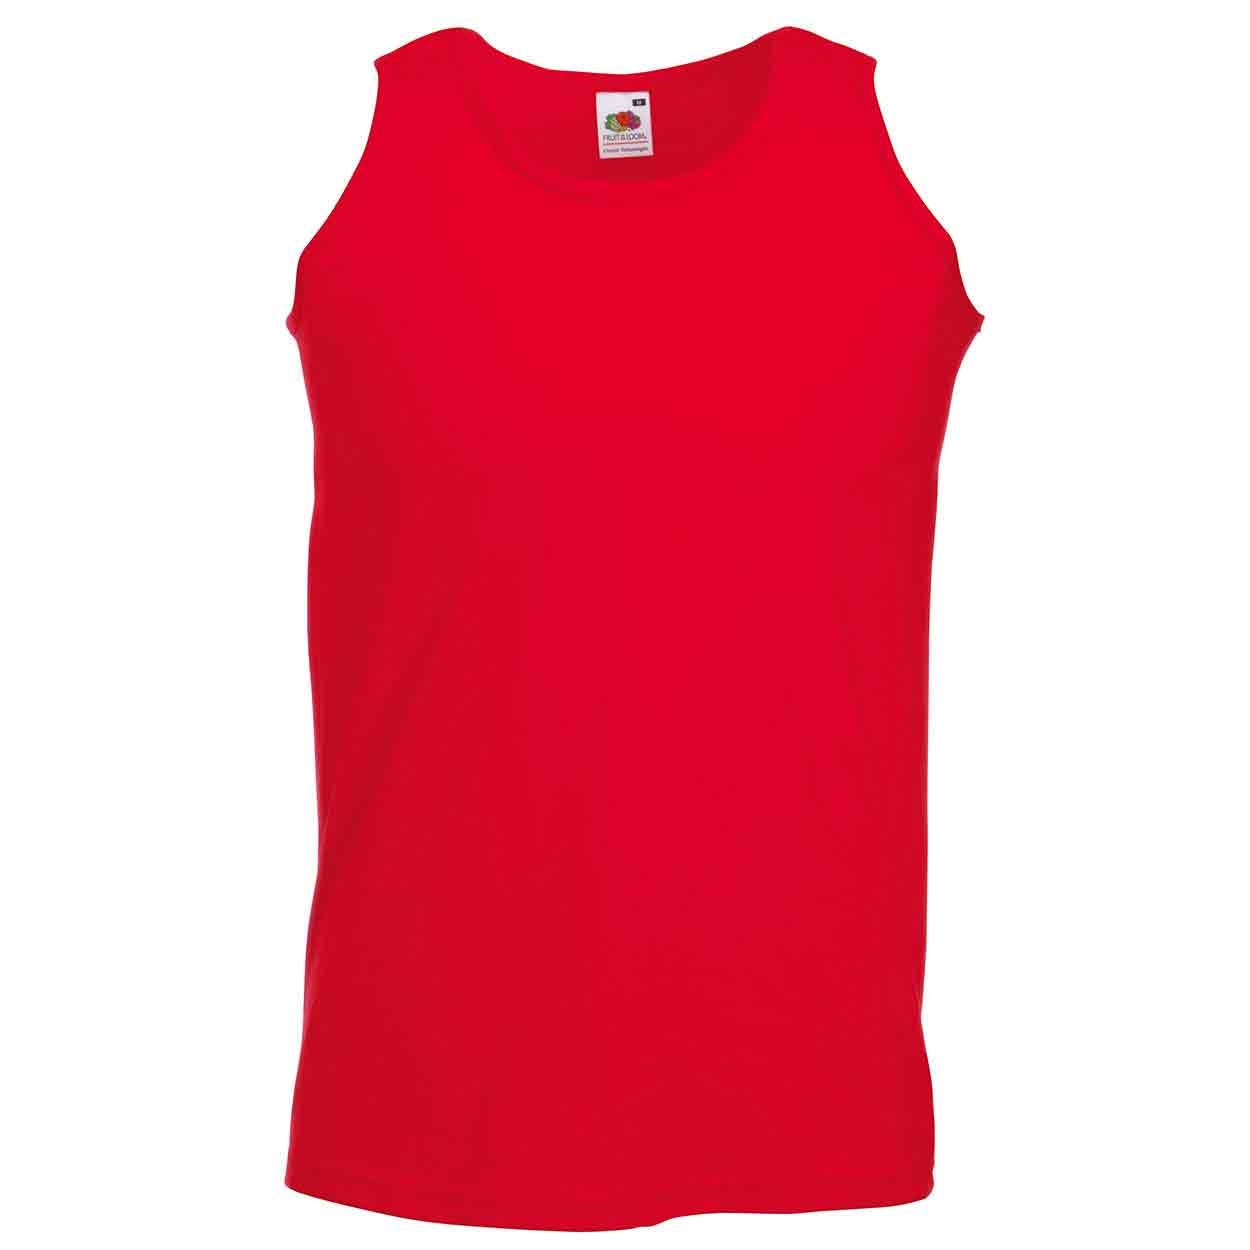 8e9ecd1802414a Fruit of the Loom SS18 Athletic Vest - Mens Sleeveless T-Shirts ...